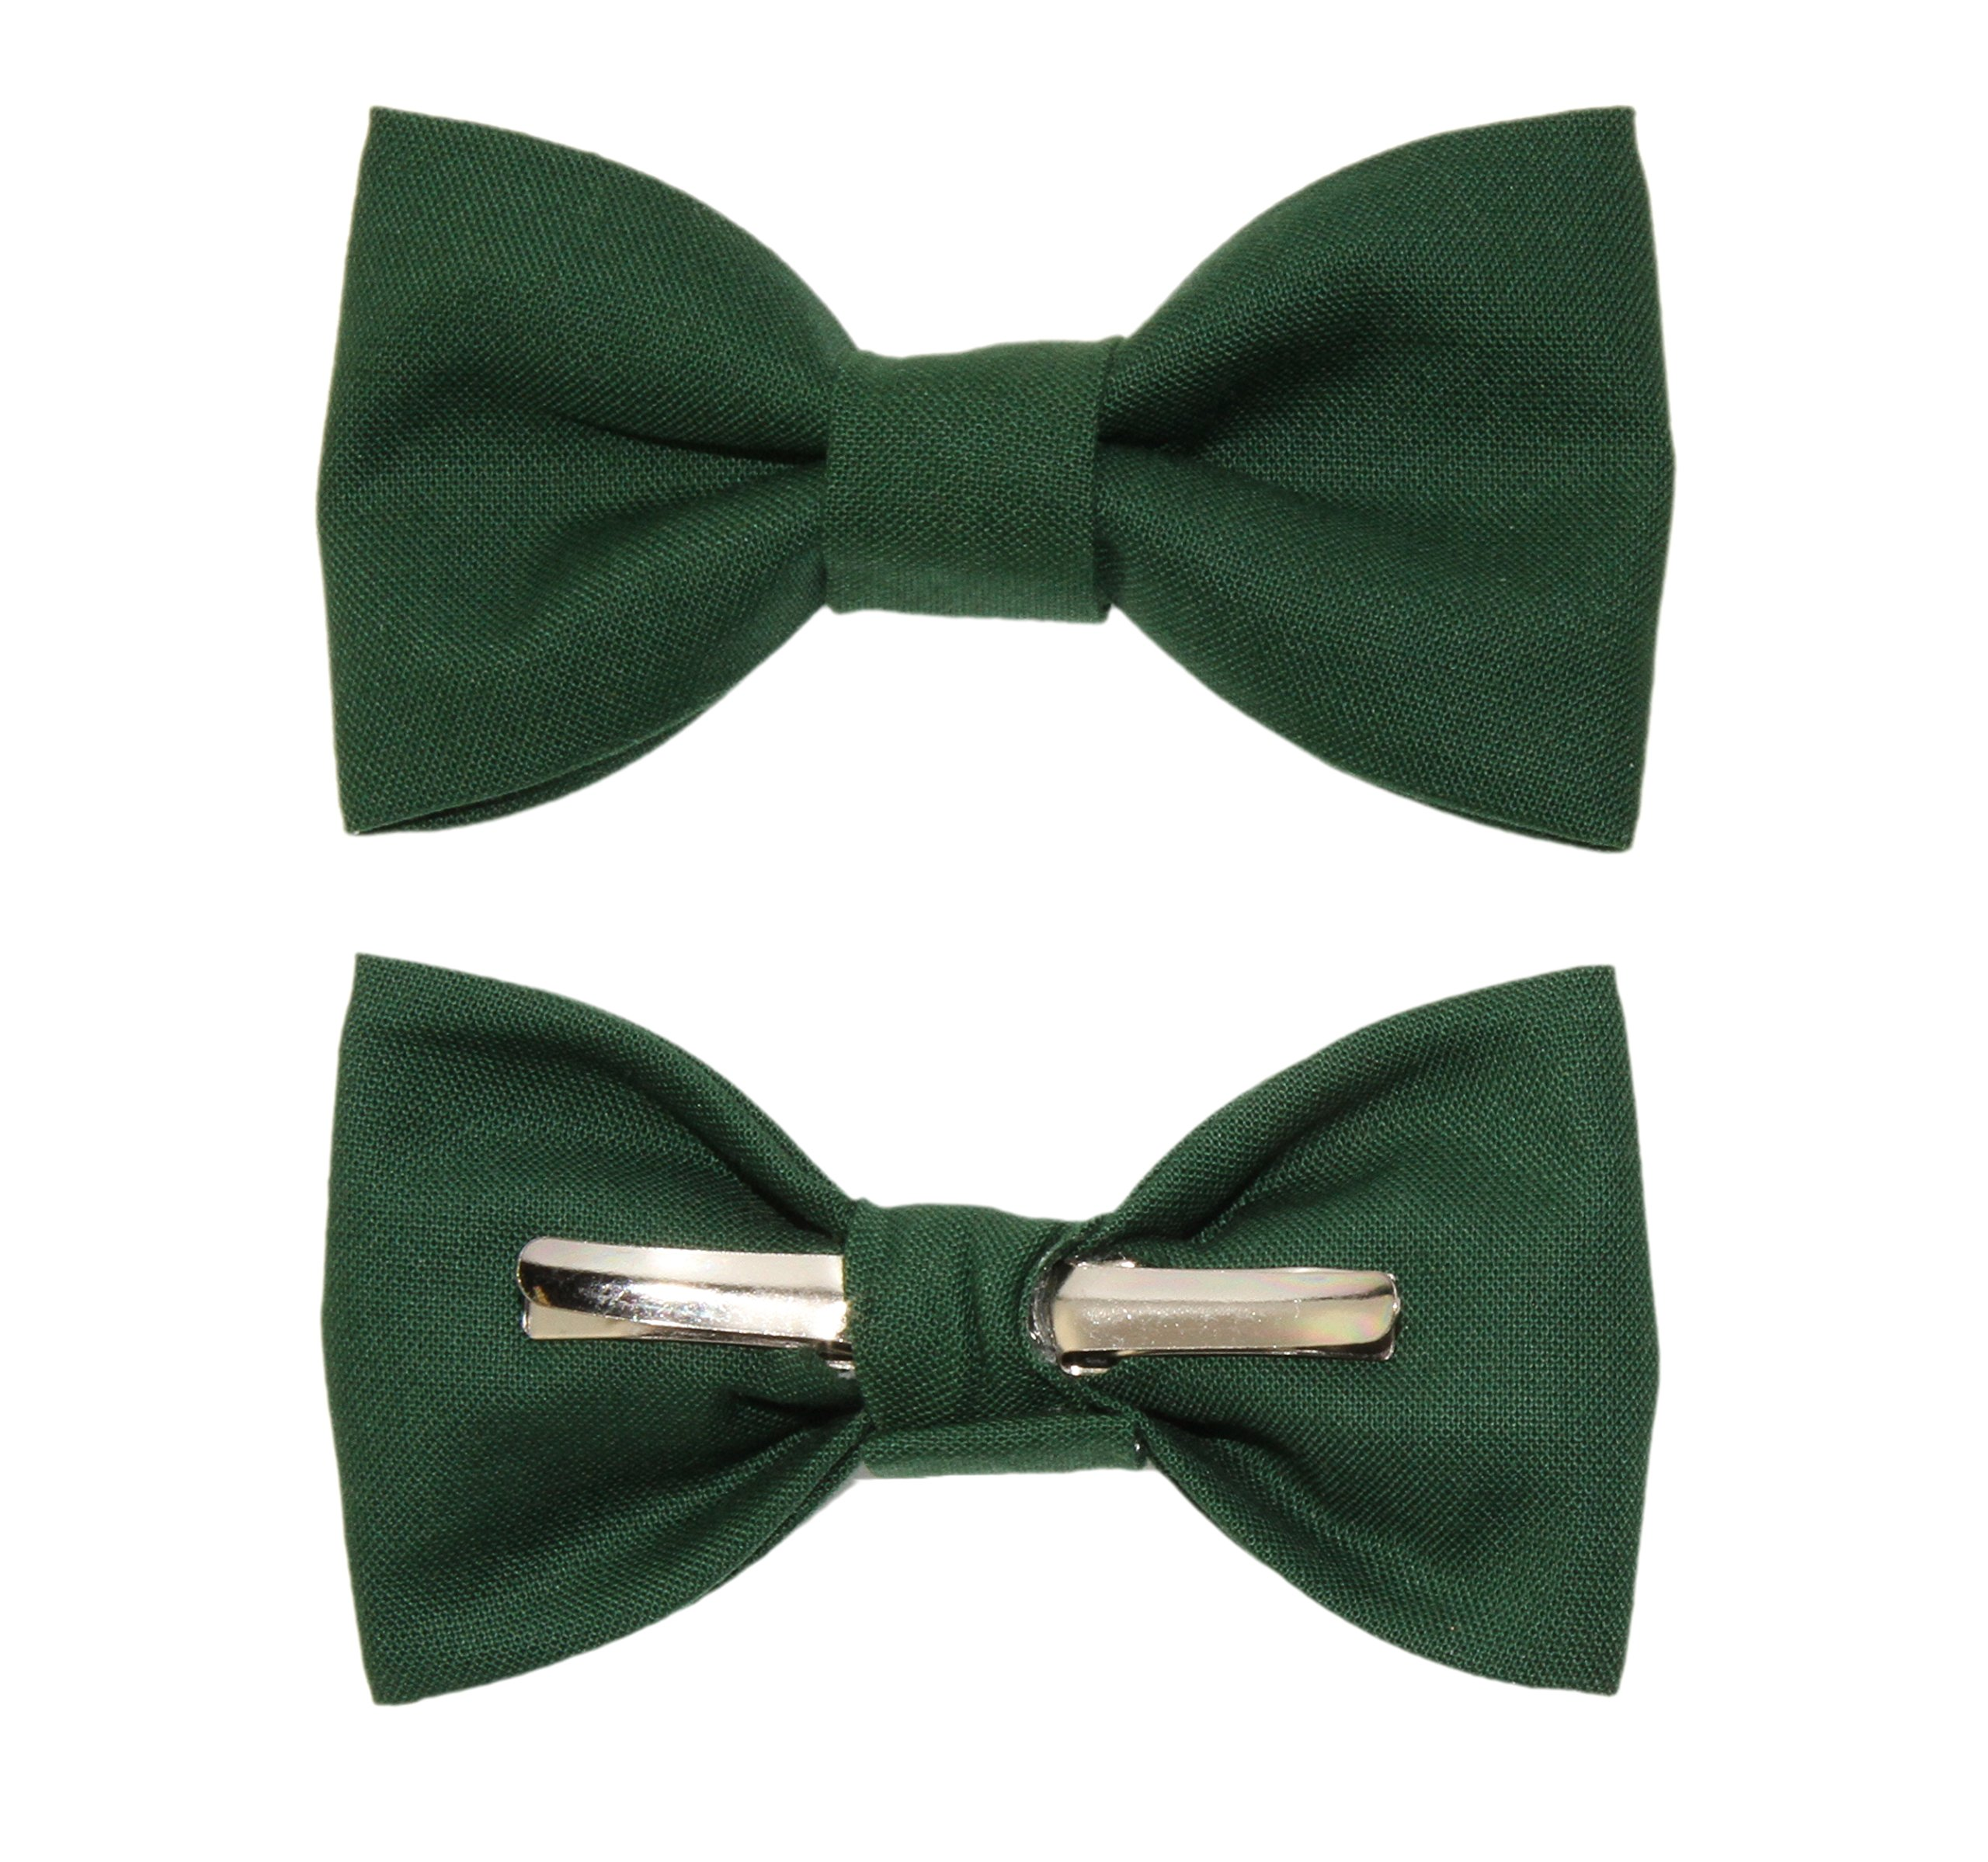 Toddler Boy 4T 5T Forest Green Clip On Cotton Bow Tie - Made In The USA